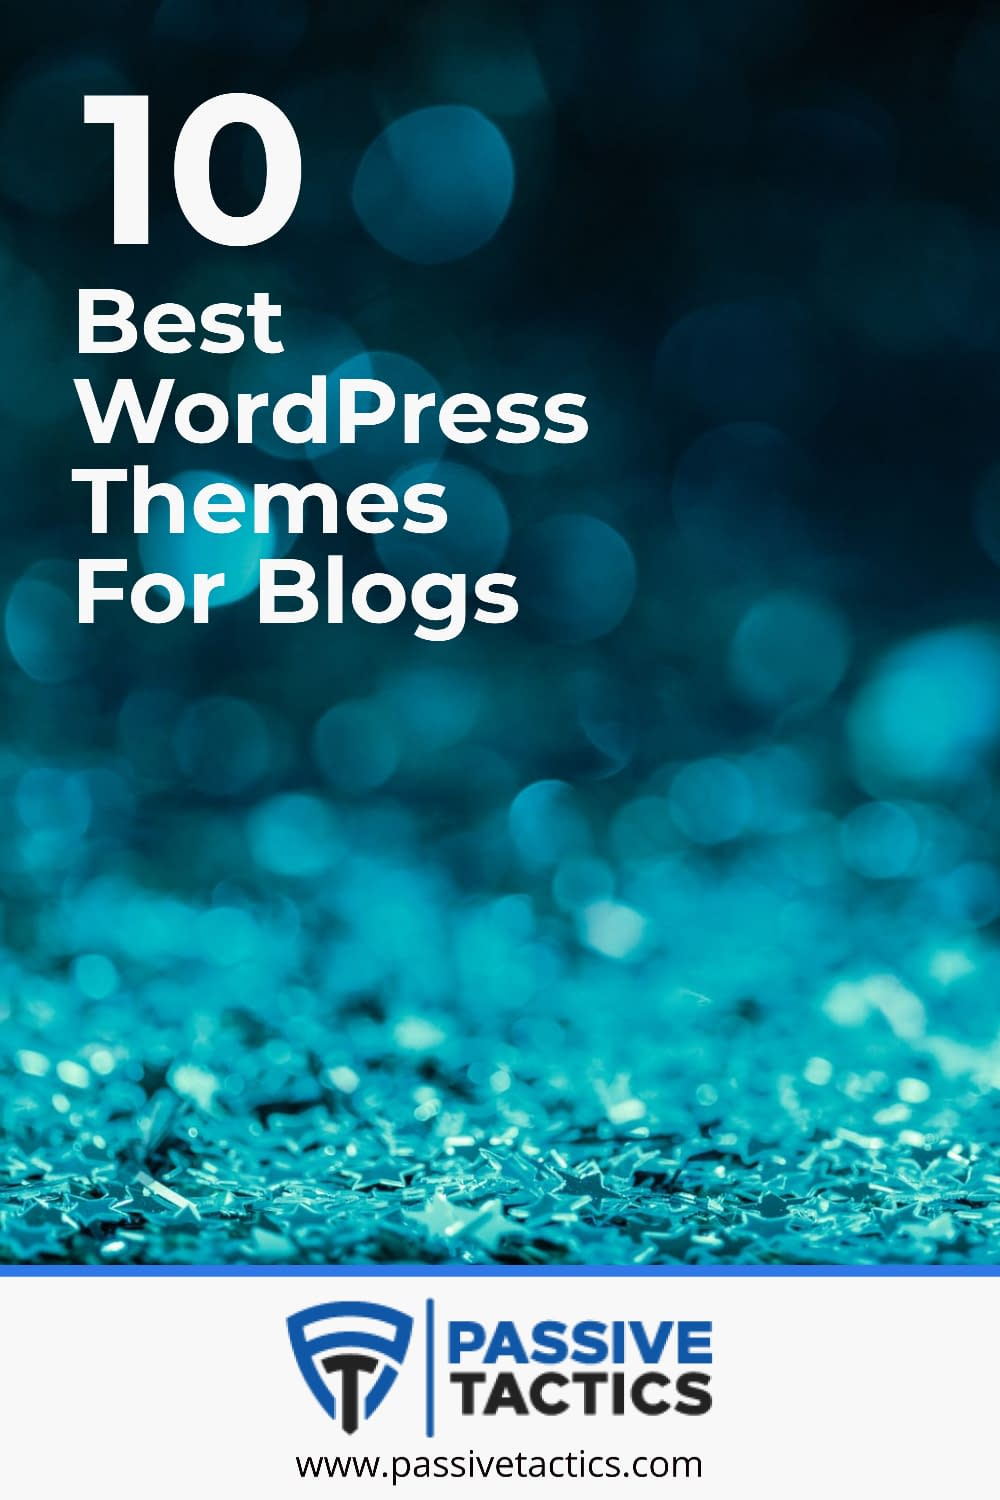 10 Best WordPress Themes For Your Blog